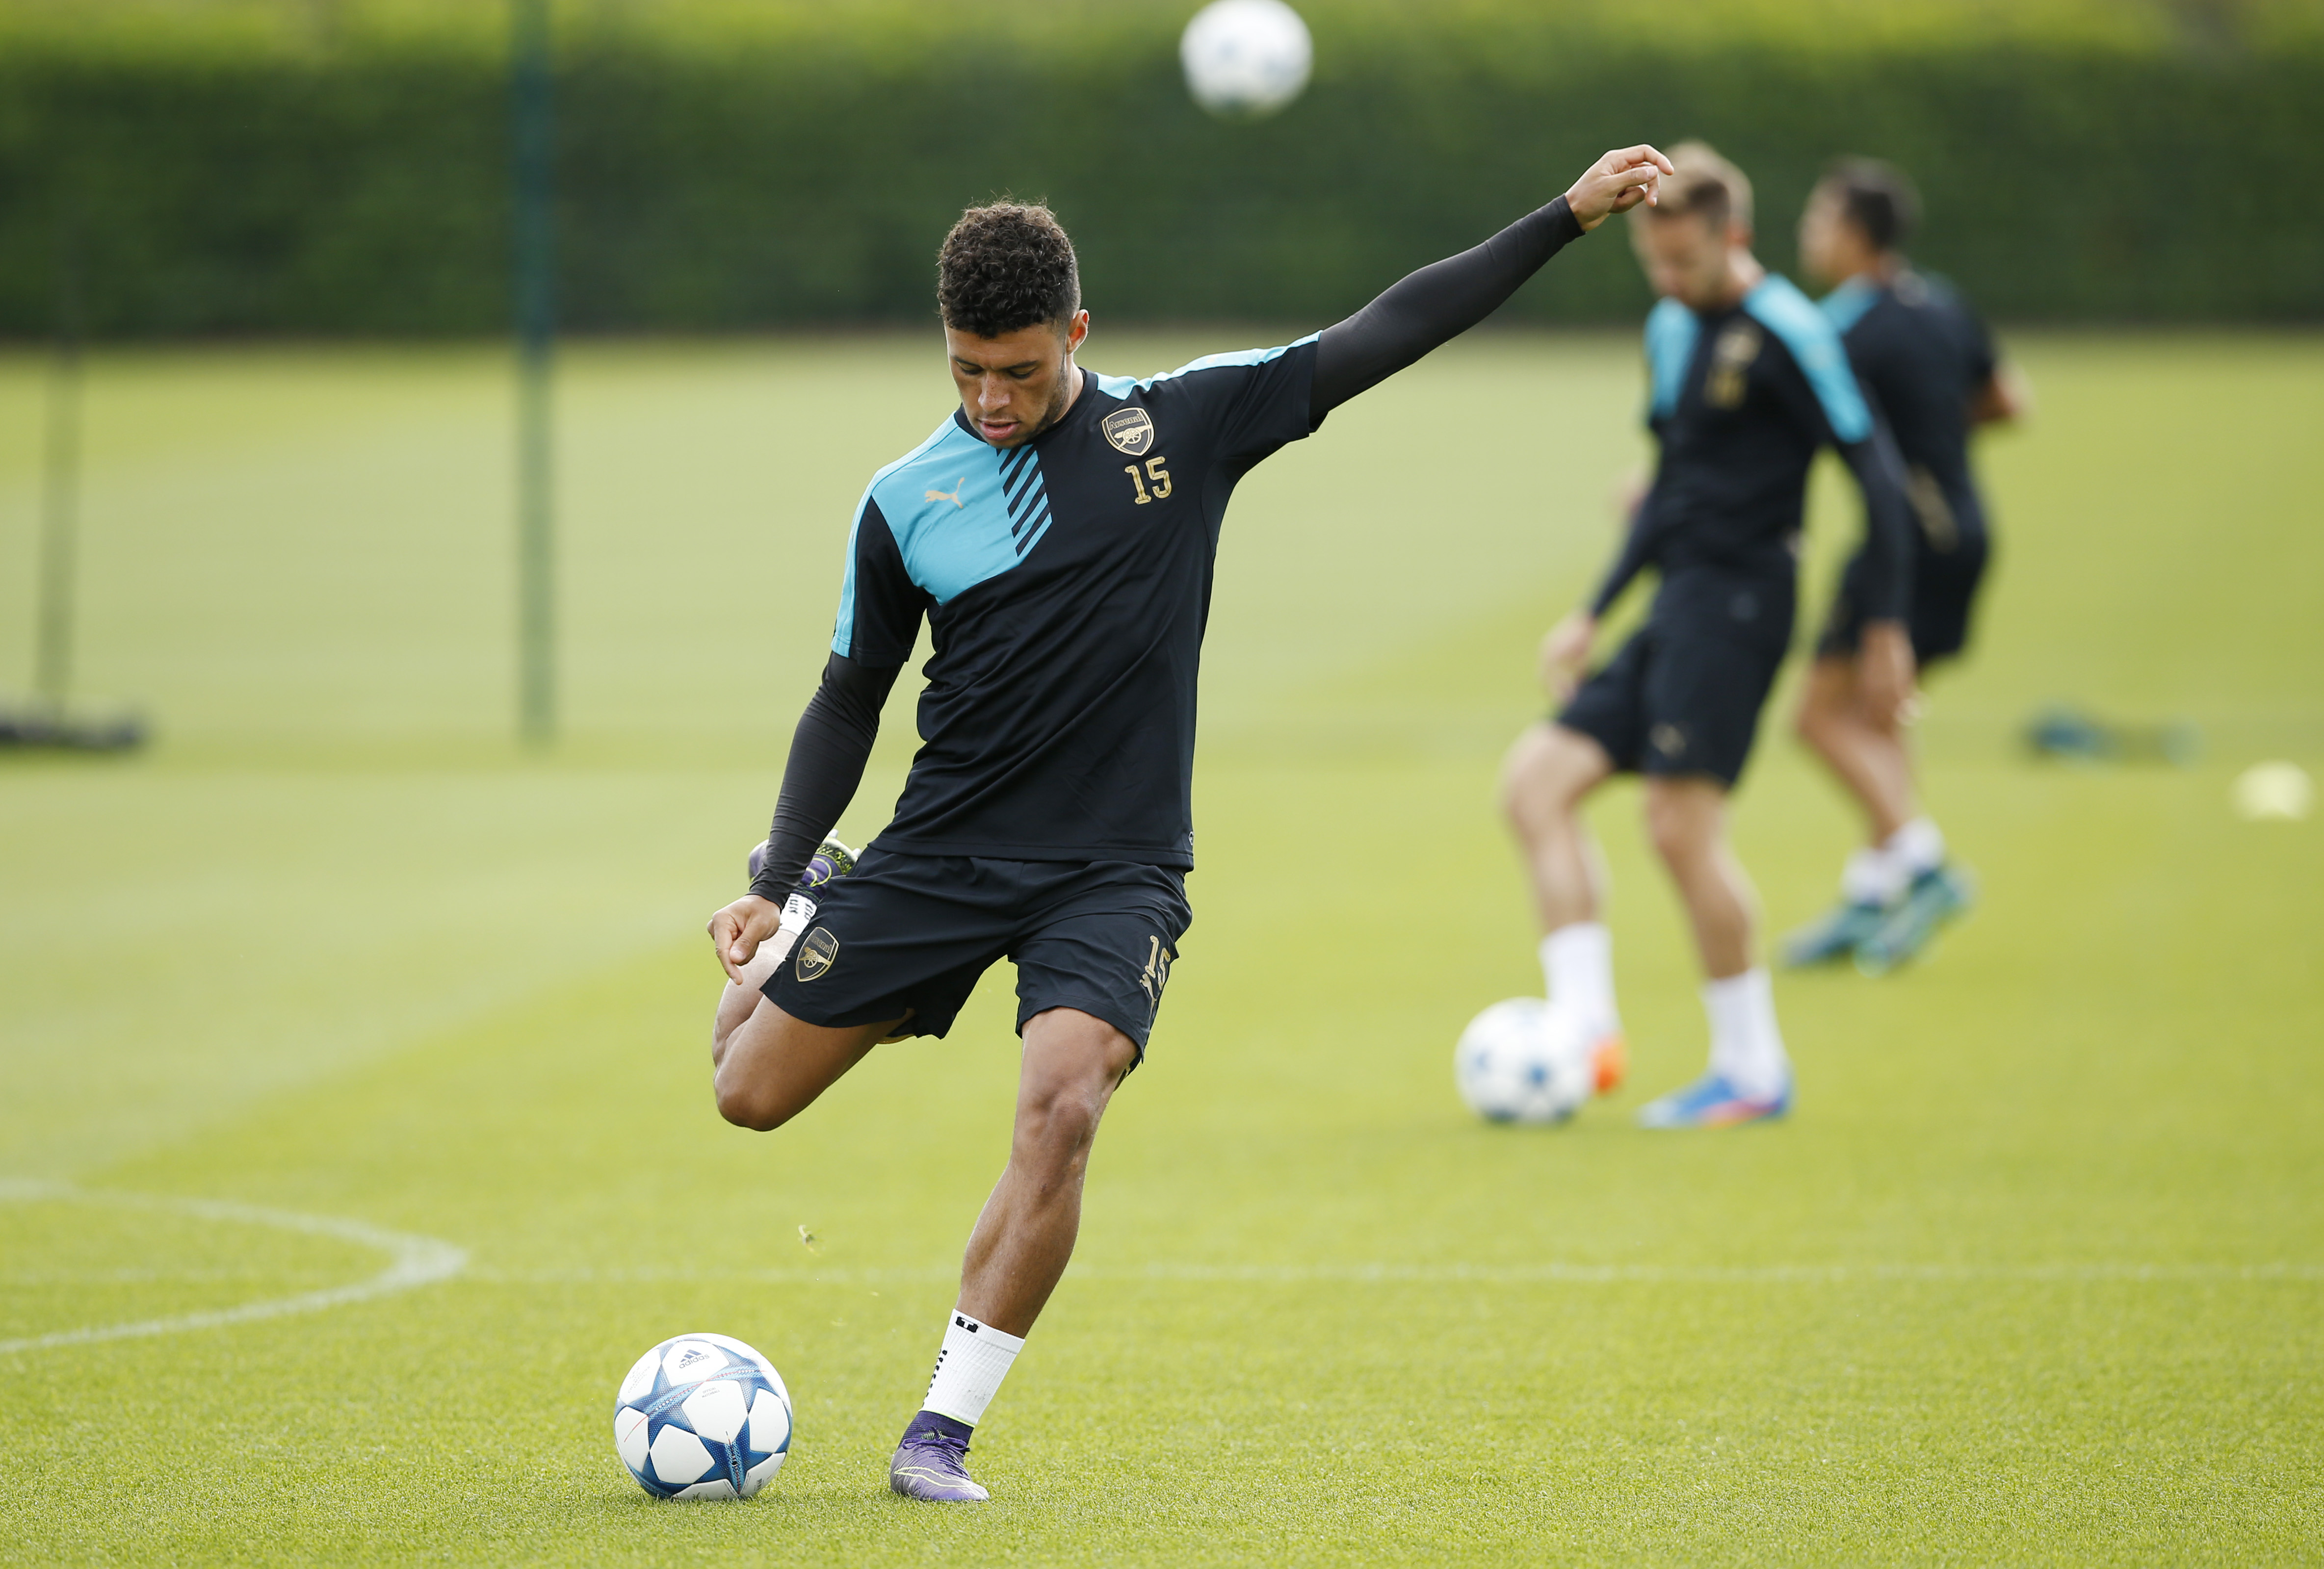 Football - Arsenal Training - Arsenal Training Ground - 28/9/15nArsenal's Alex Oxlade-Chamberlain during trainingnAction Images via Reuters / John SibleynLivepicnEDITORIAL USE ONLY.